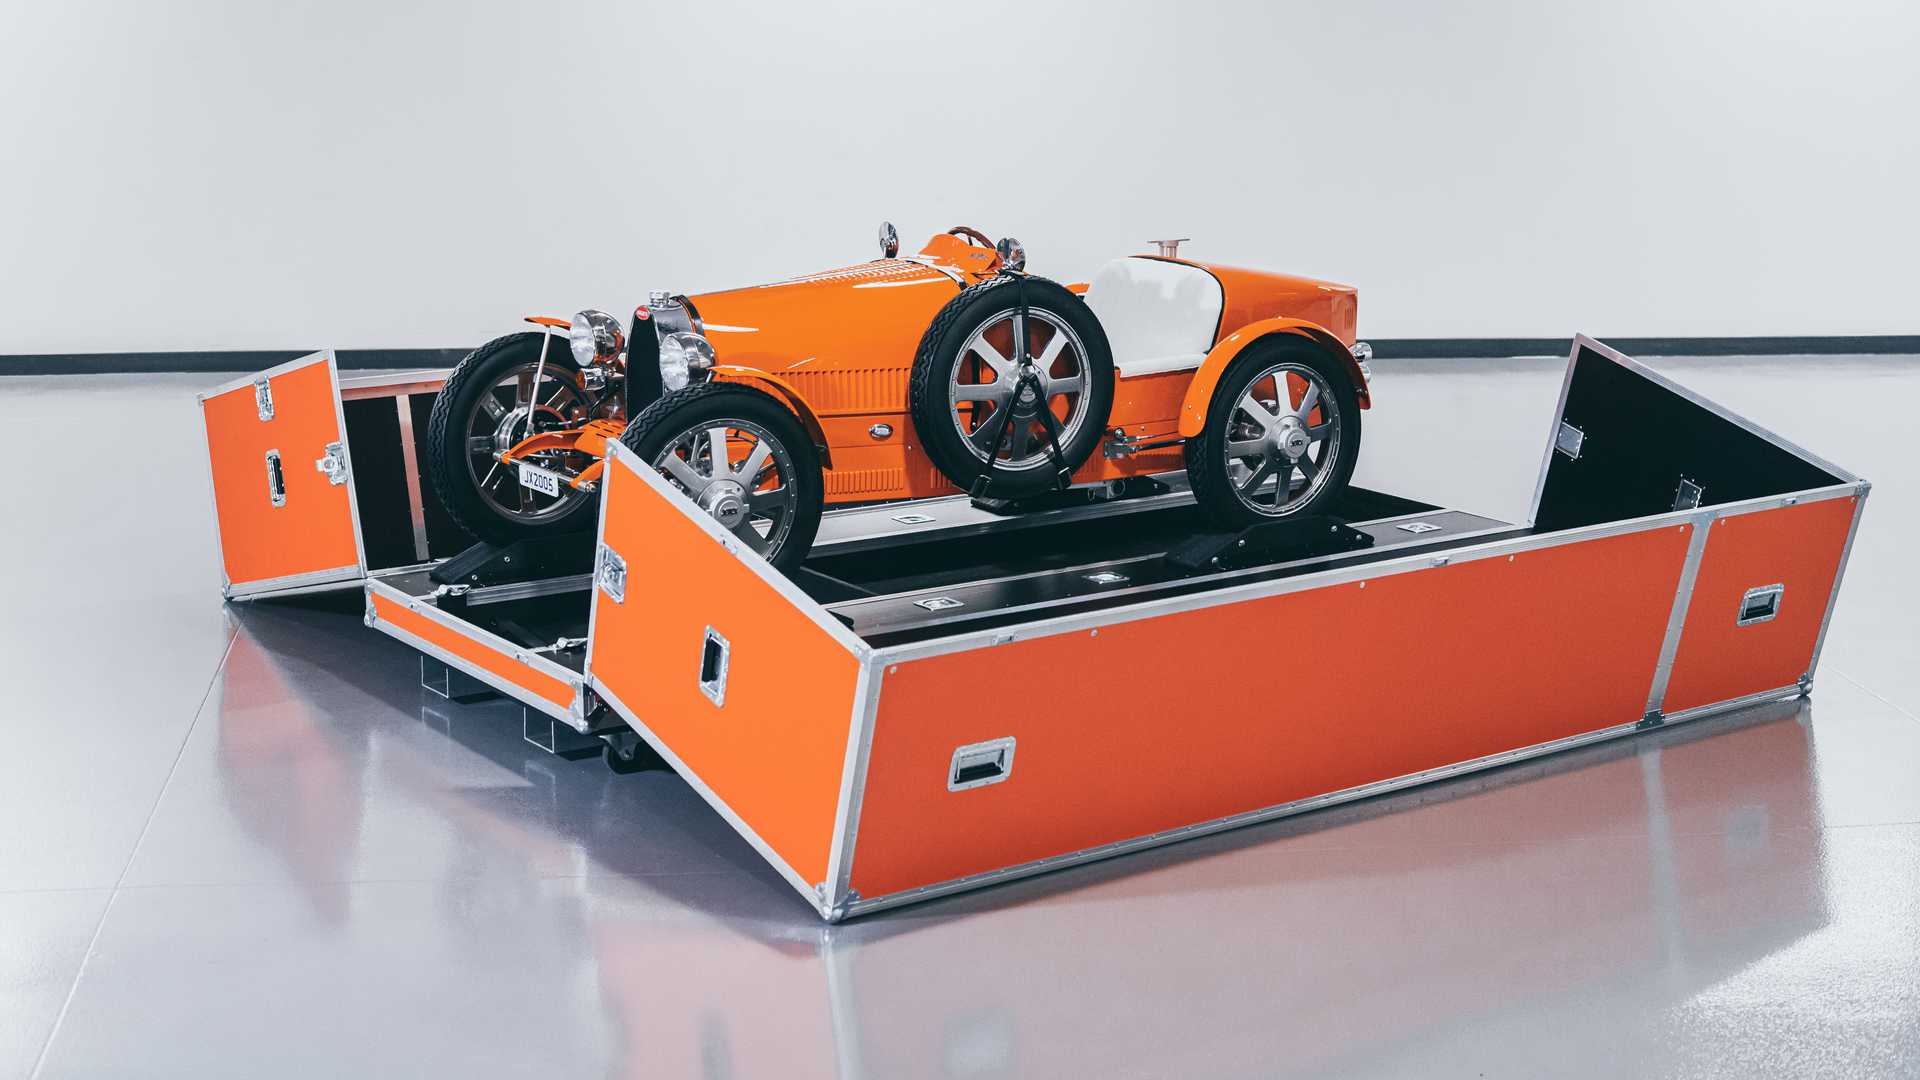 First buyers received their 3:4 replicas of the historical Bugatti Type 35 this week. The Little Car Company sells the road-legal imitation to children and those adults who think they will fit inside.